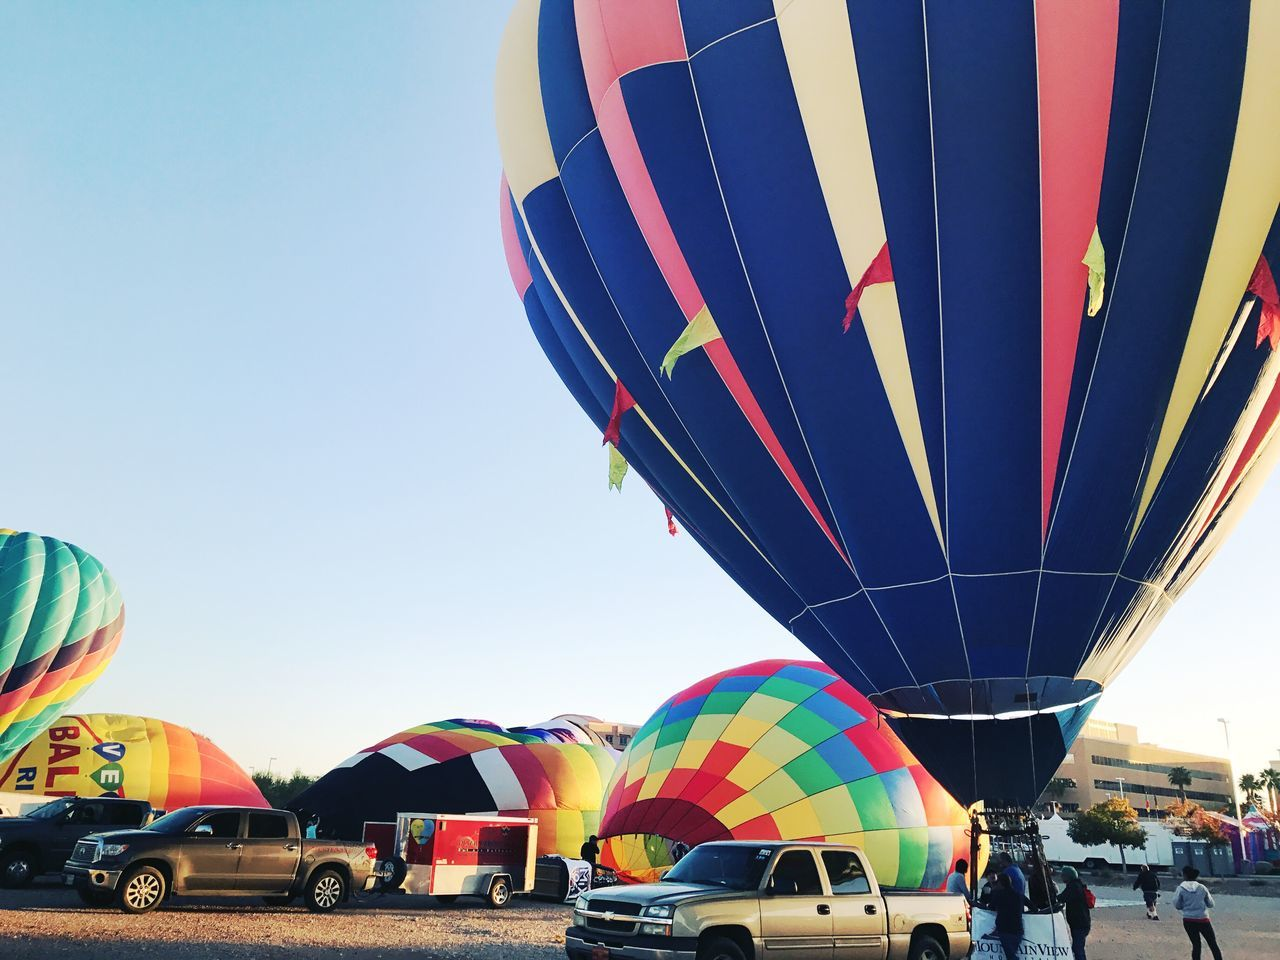 multi colored, hot air balloon, transportation, mode of transport, ballooning festival, outdoors, clear sky, sky, day, city, no people